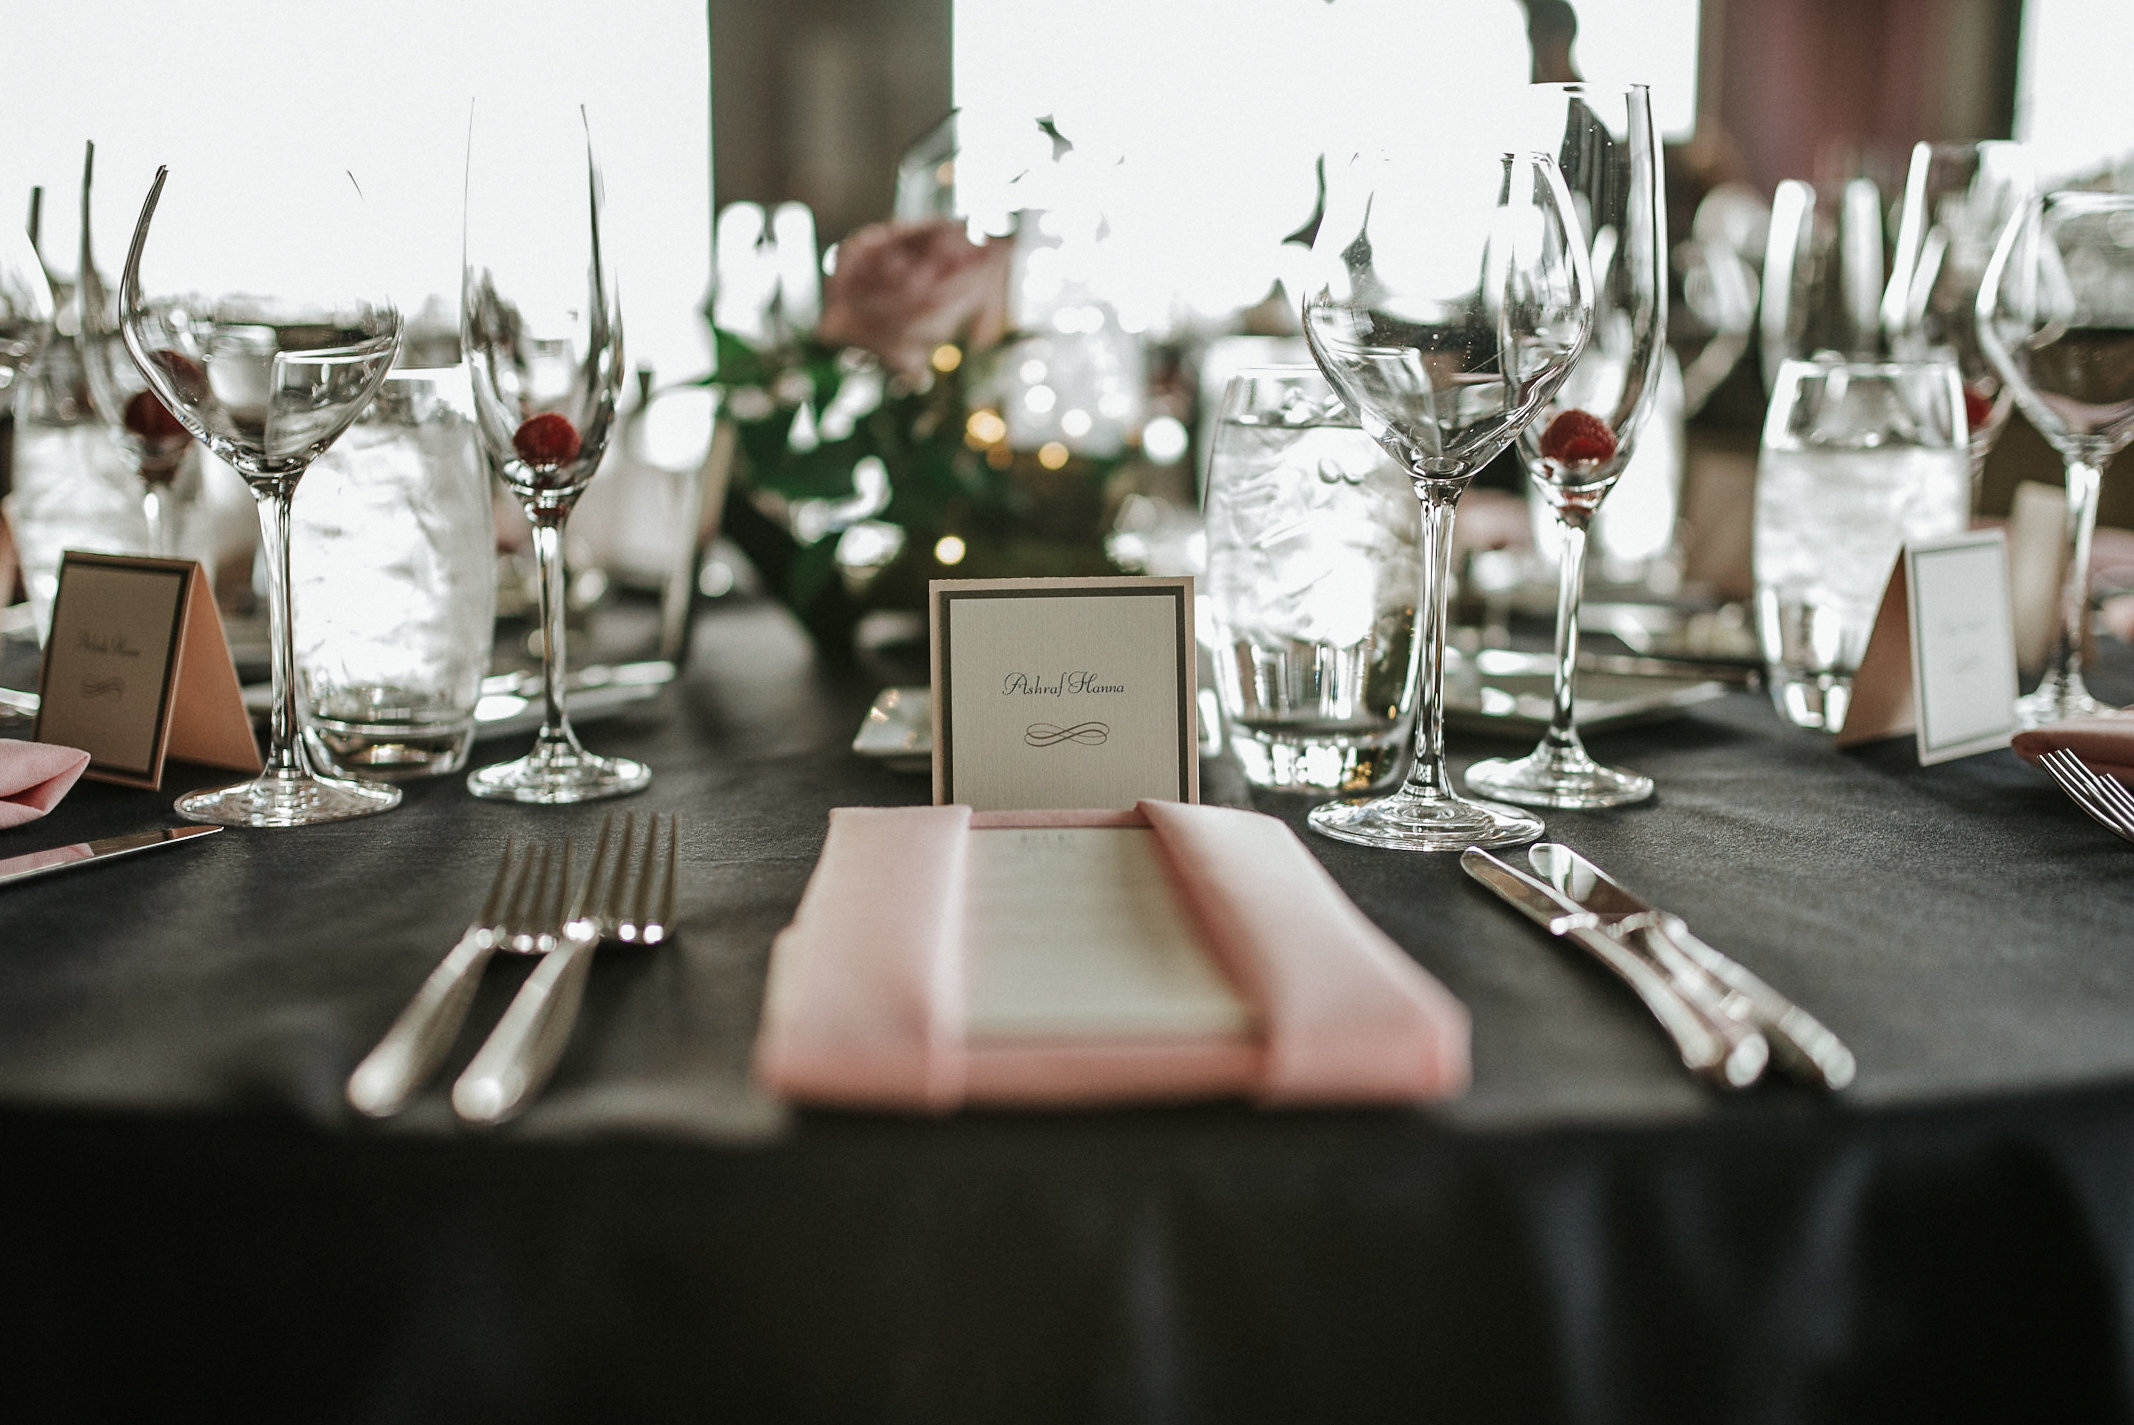 Table setting for elegant wedding